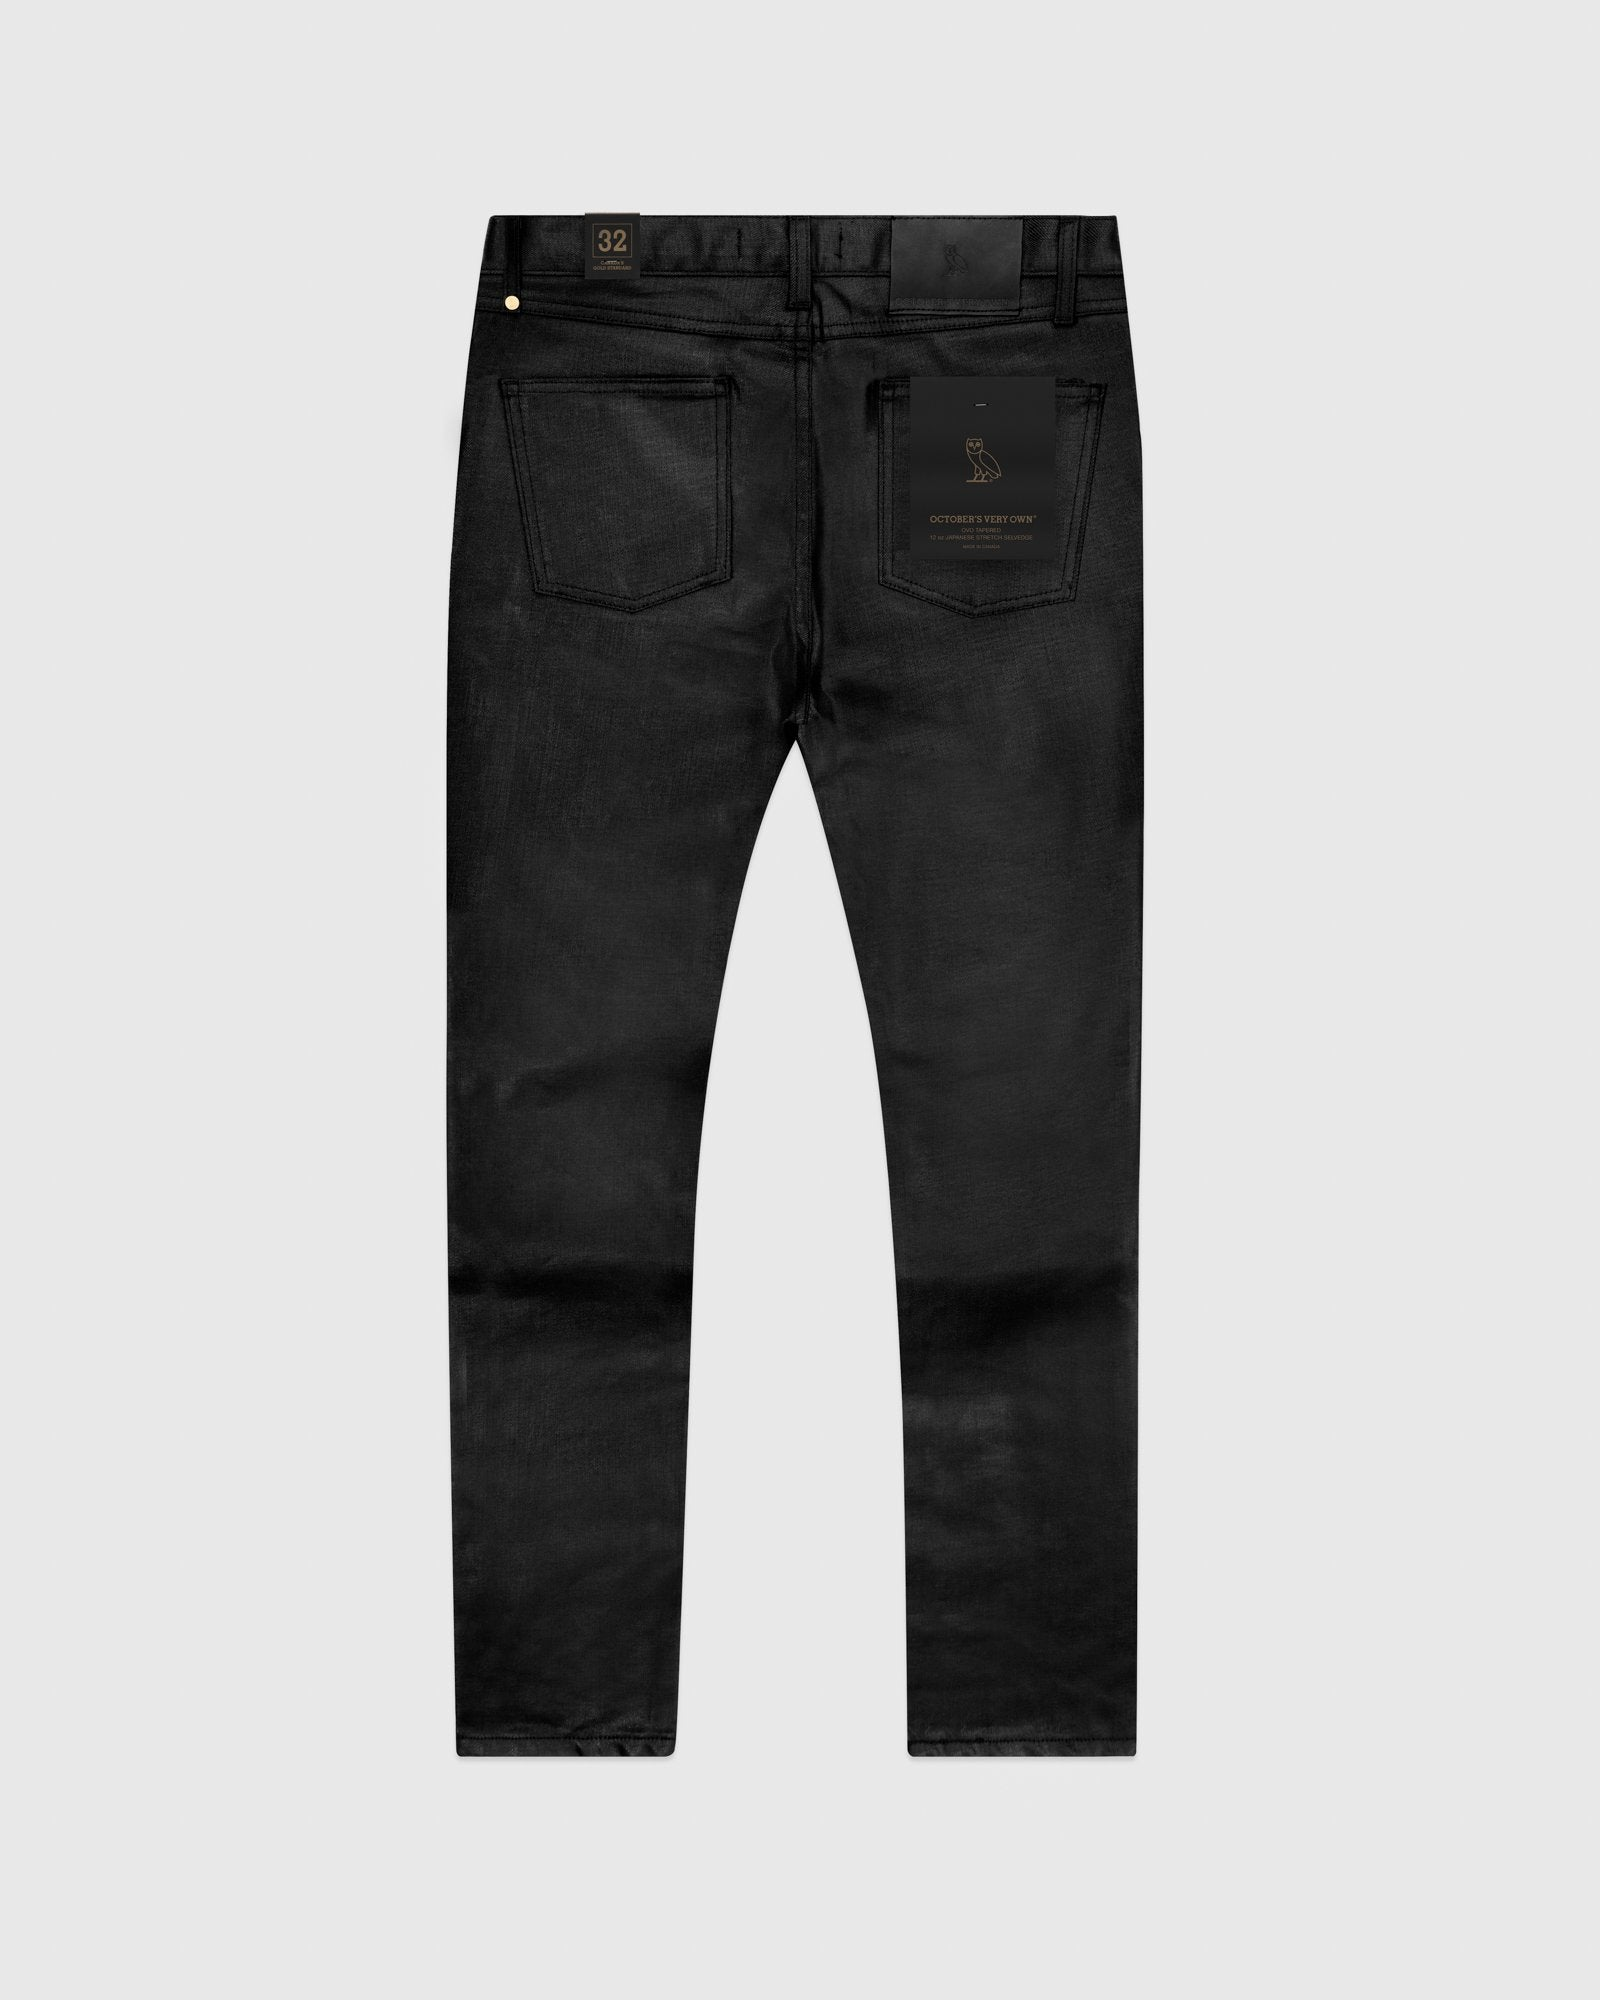 WAXED JEANS - BLACK IMAGE #3